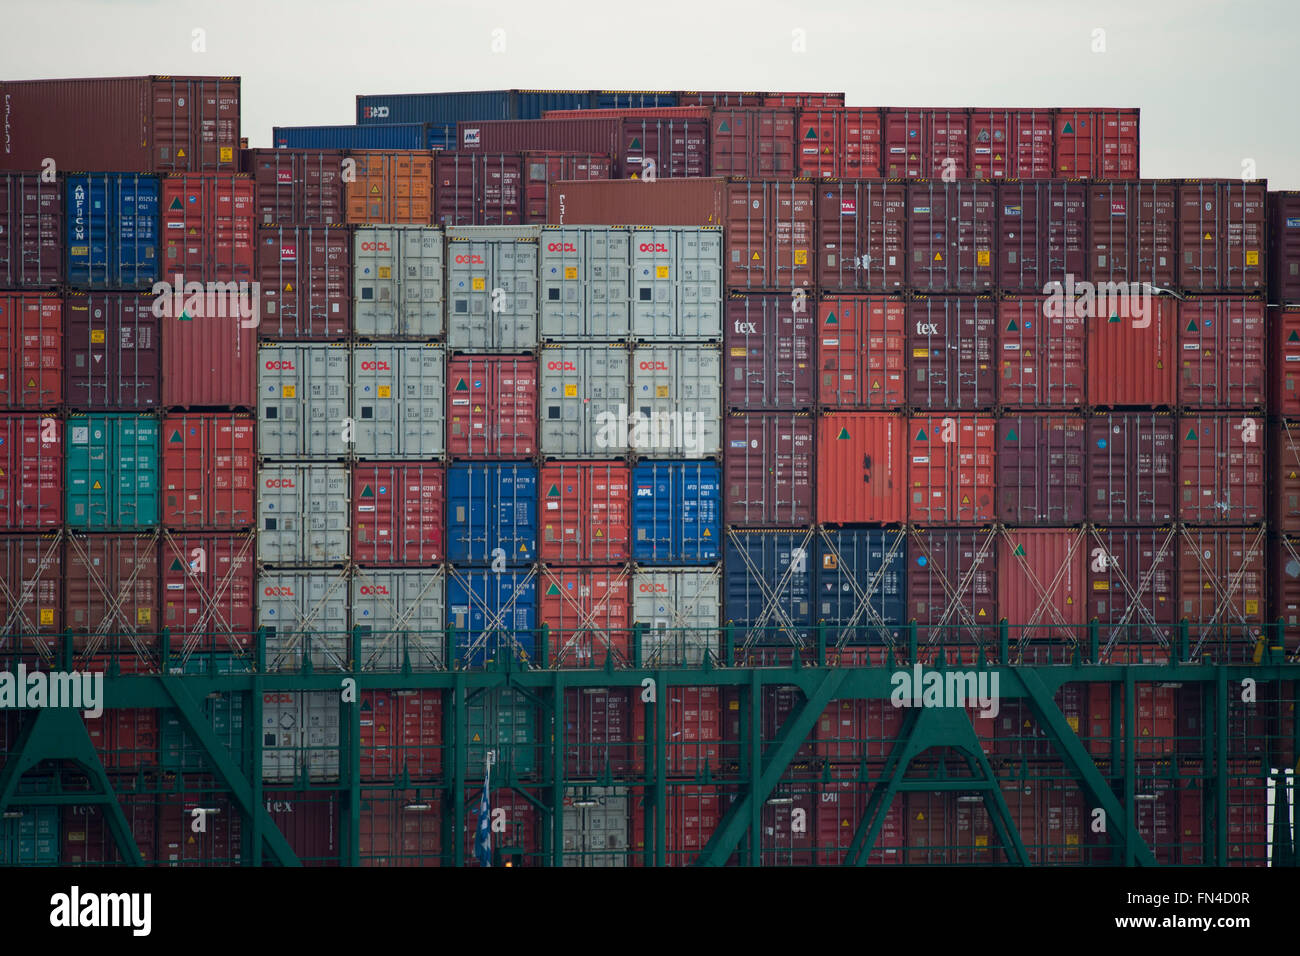 Shipping containers stacked on a cargo ship at Southampton, England, UK. - Stock Image